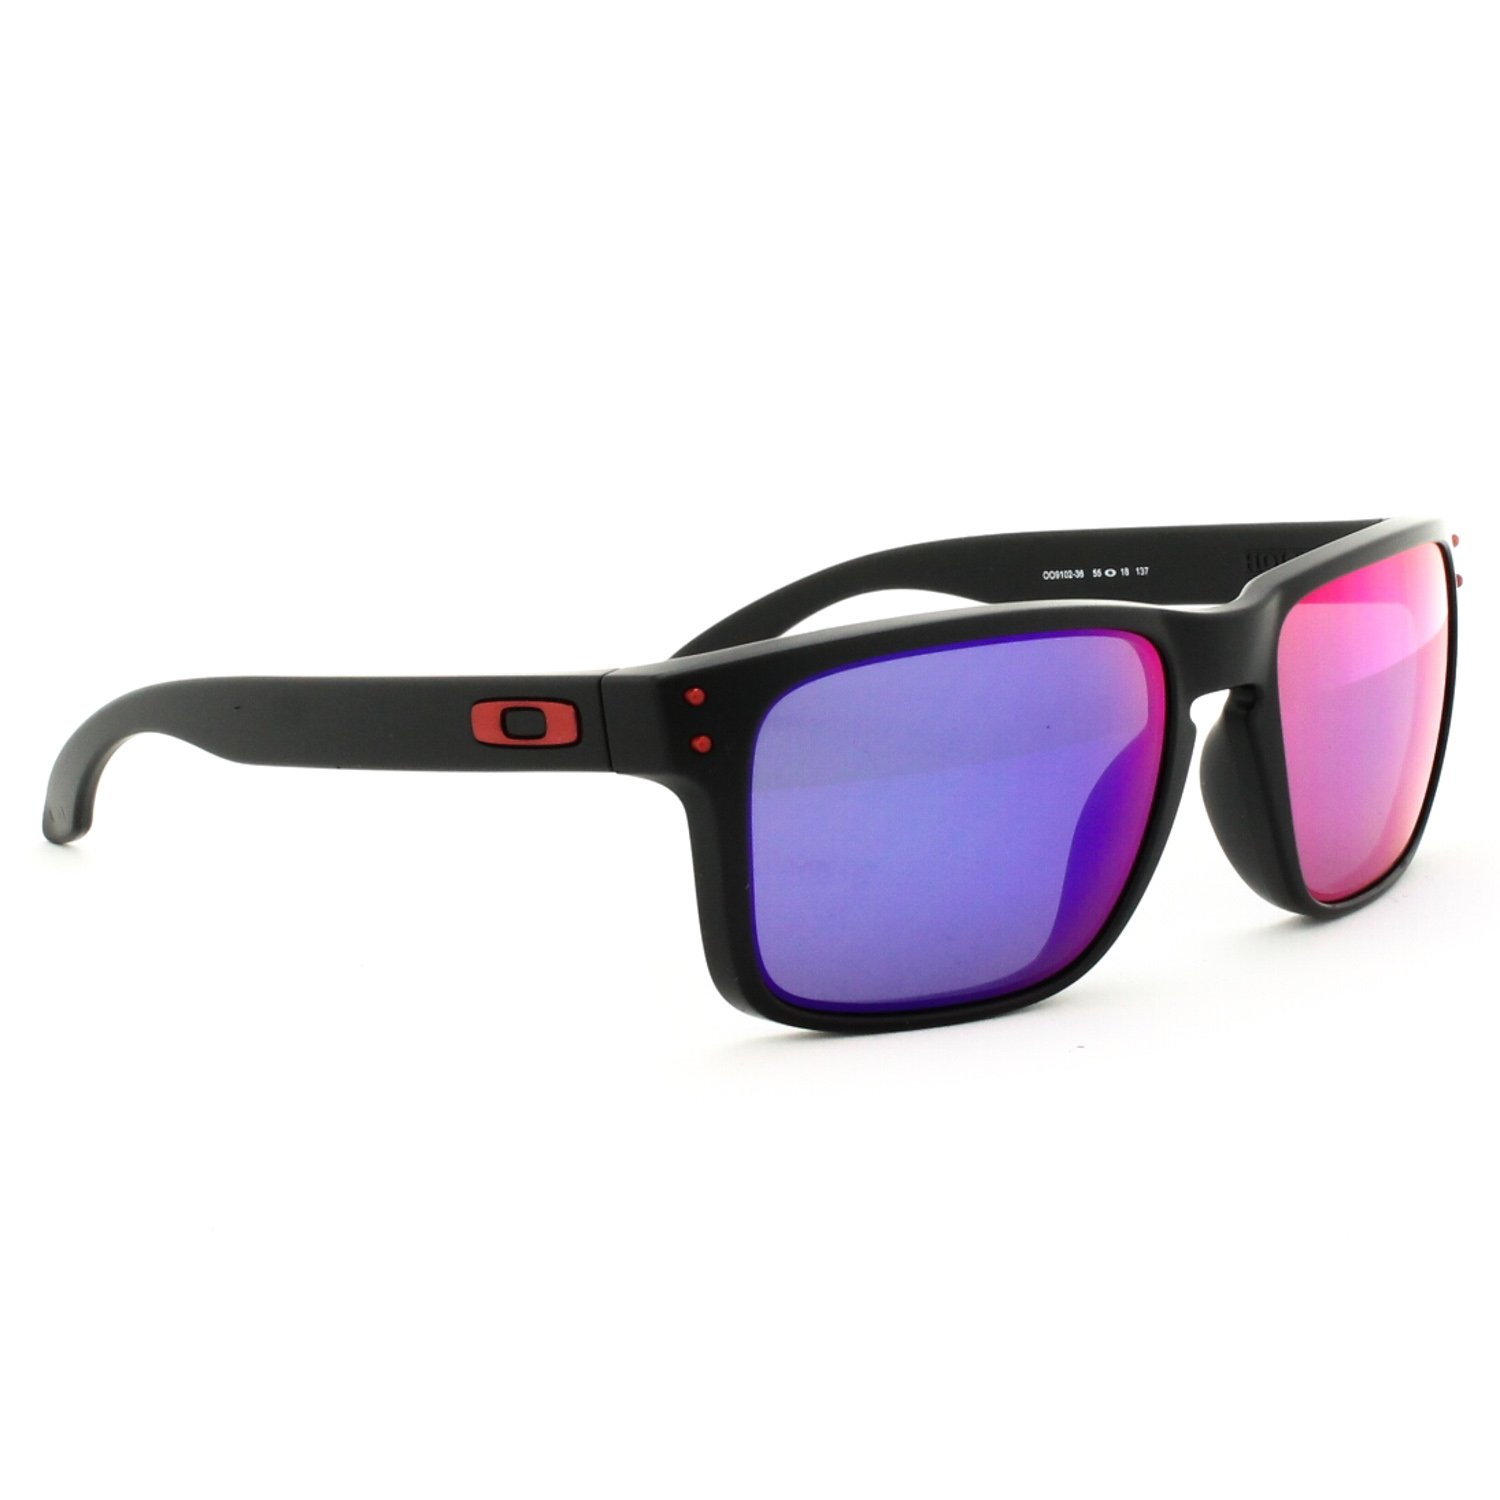 337c2458e8797 Amazon.com  Oakley Holbrook Matte Black w  Red Iridium OO9102-36 +Free SD  Glasses+Cleaning Kit  Clothing